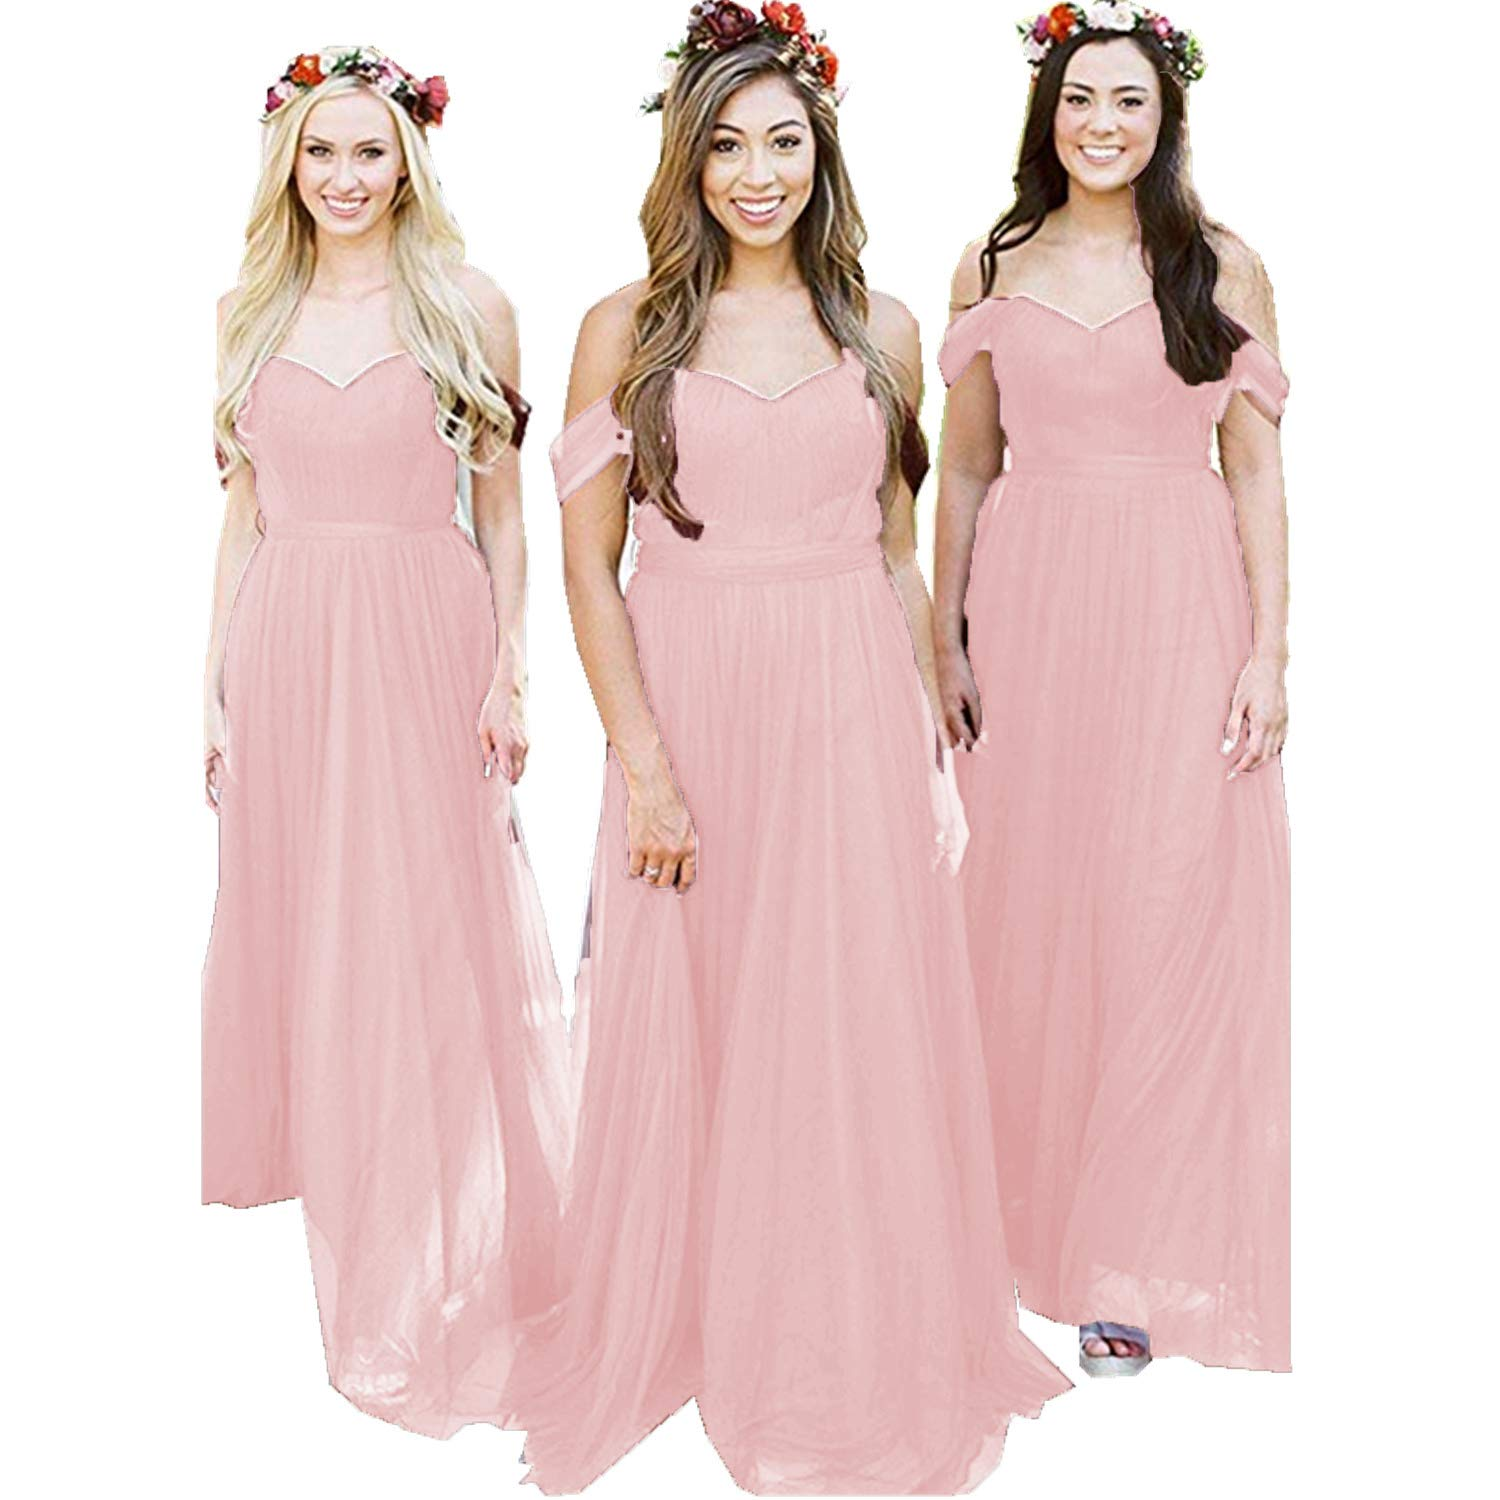 Pink Ruiyuhong Women's Off The Shoulder Bridesmaid Dresses Long Tulle Wedding Party Gown